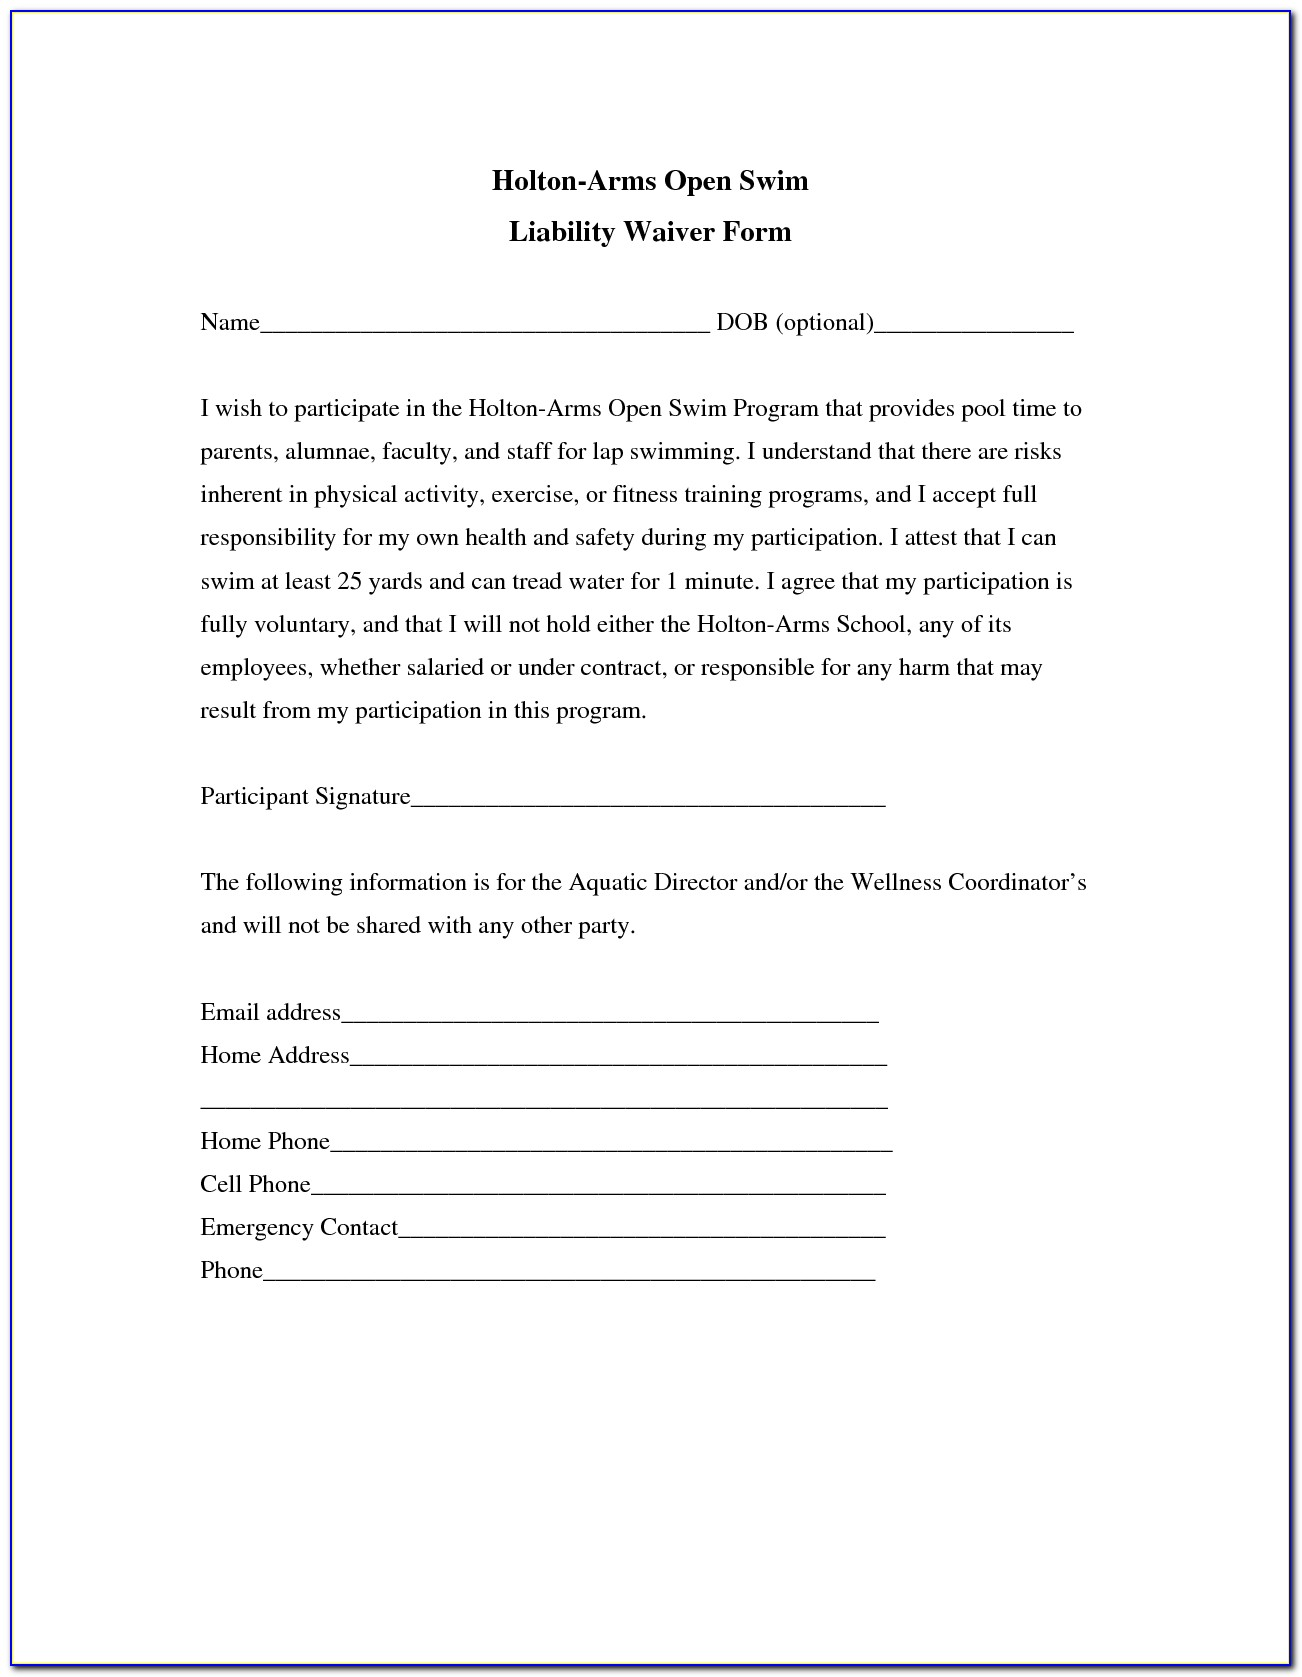 Liability Release Form Template Canada